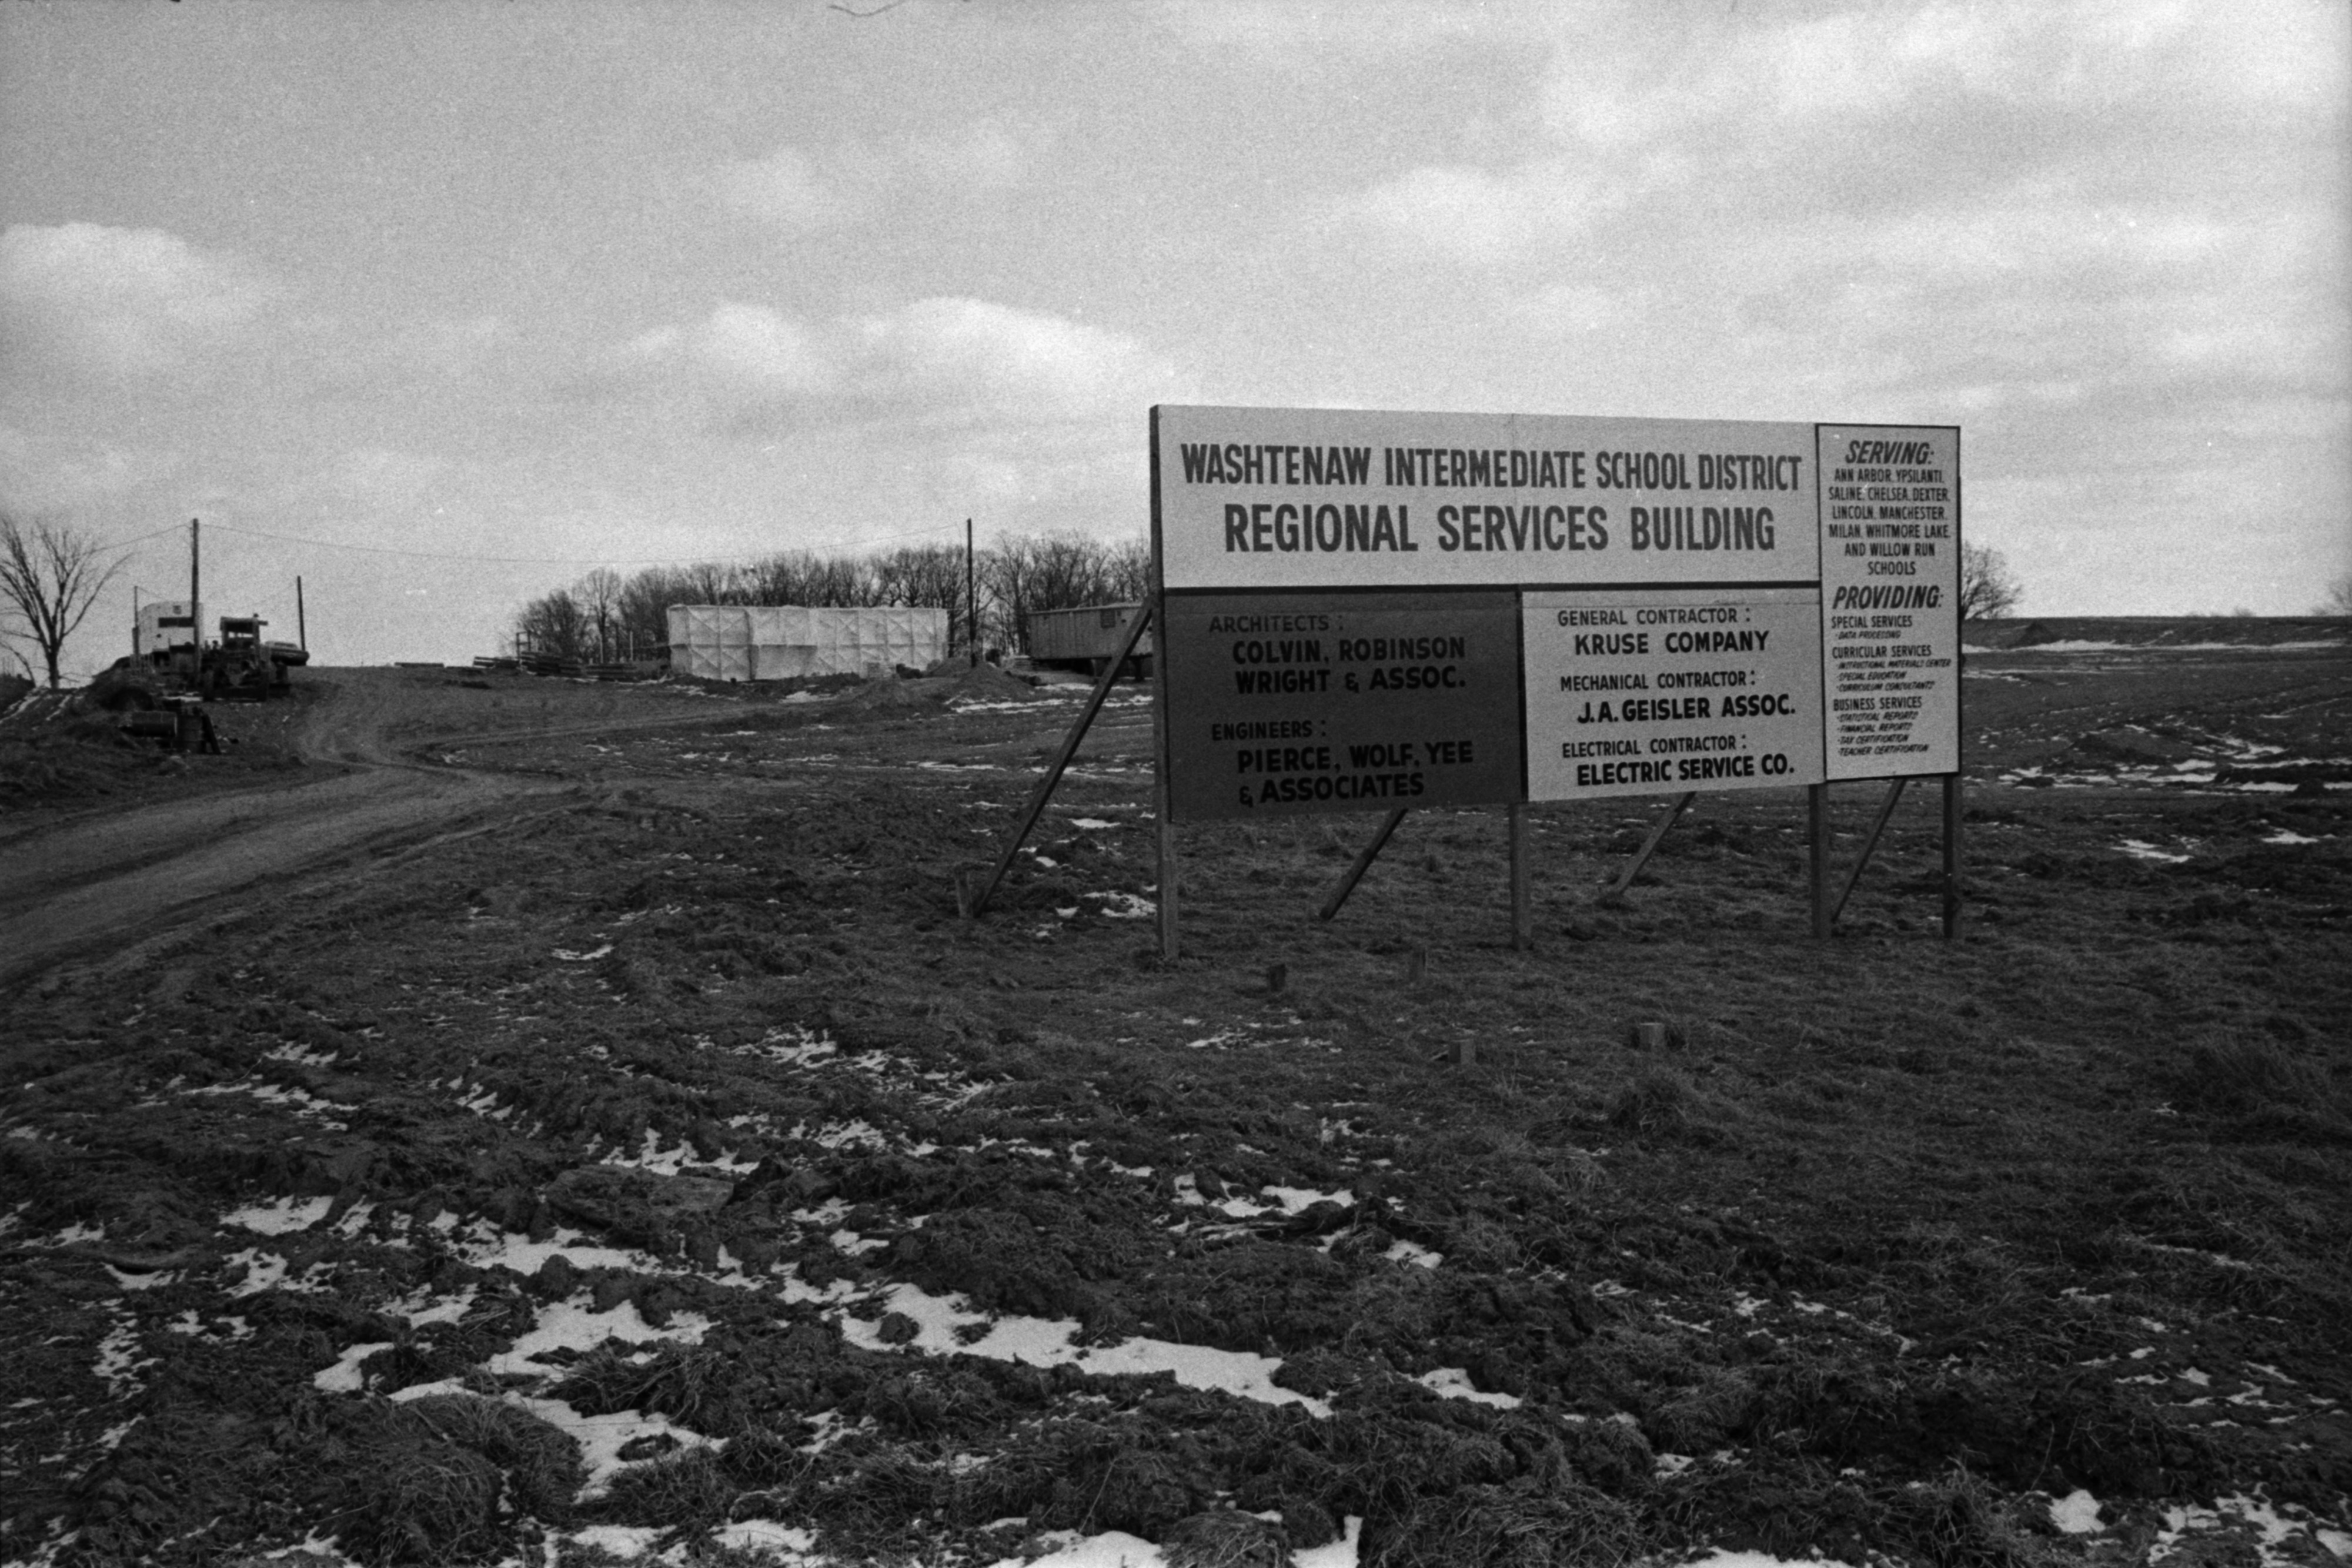 Construction of Washtenaw Intermediate School District's Administrative Service Building, February 1969 image